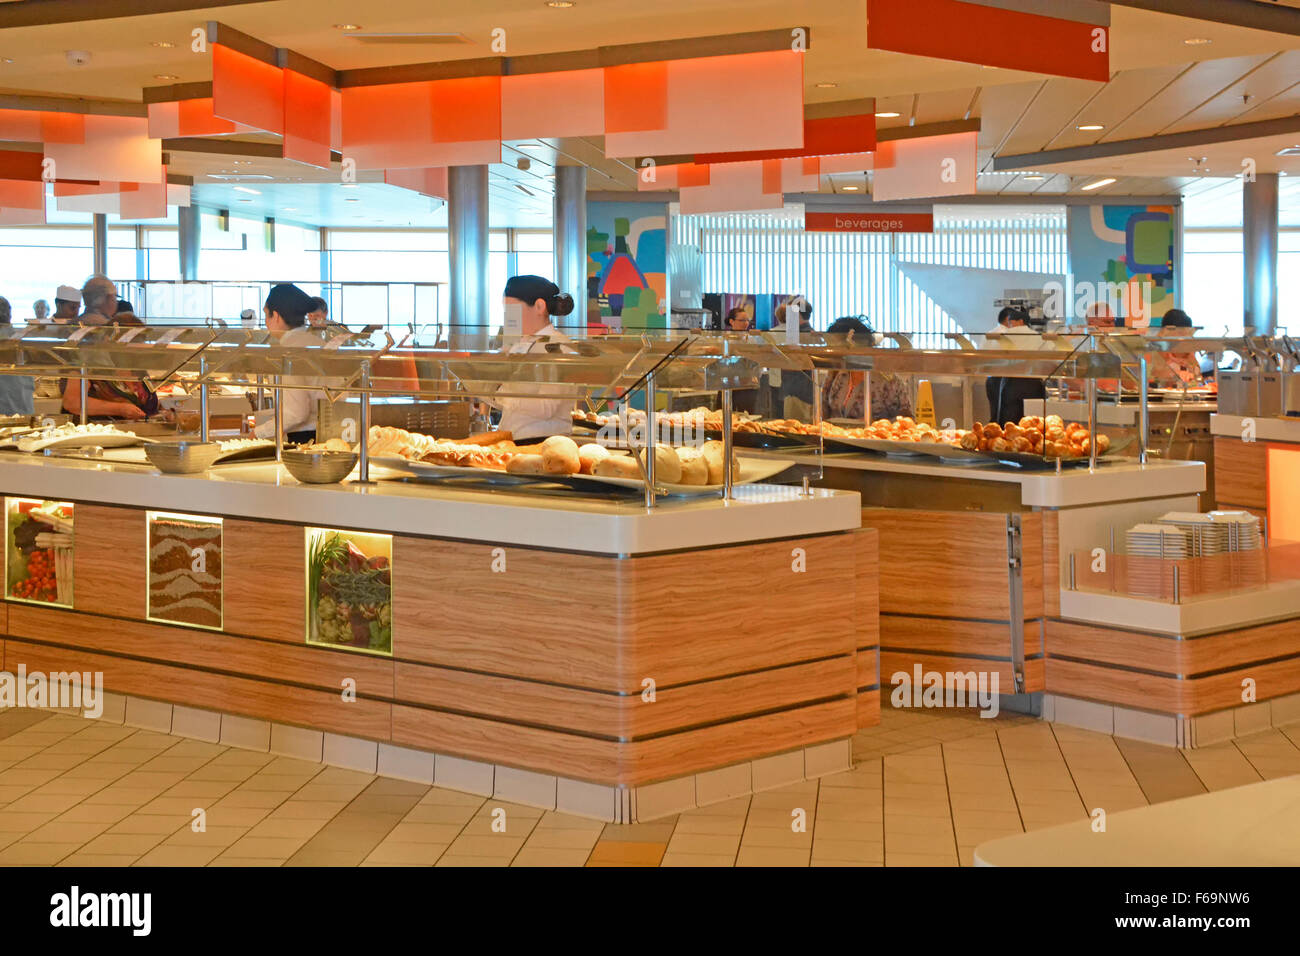 Cruise ship cafeteria deck ocean liner Mediterranean cruising early morning with breakfast buffet style self service - Stock Image